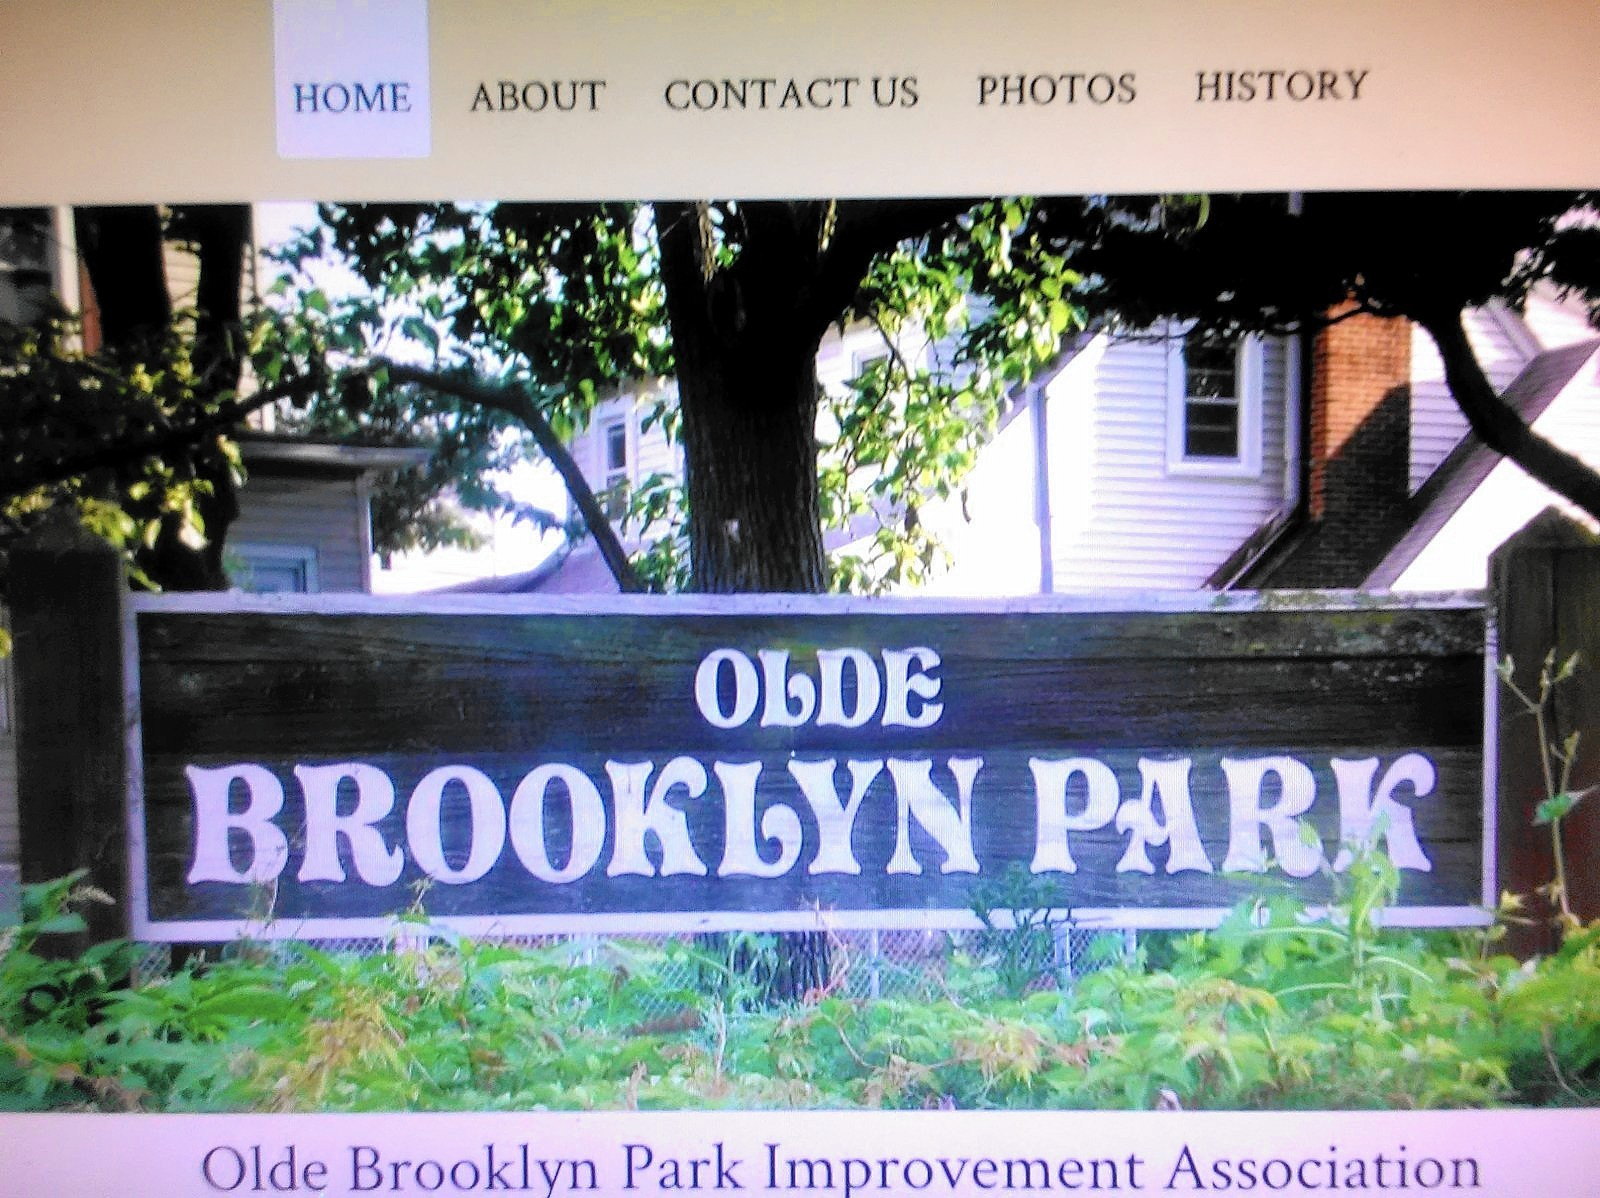 Brooklyn Park Improvement Association Upgrades With New Website